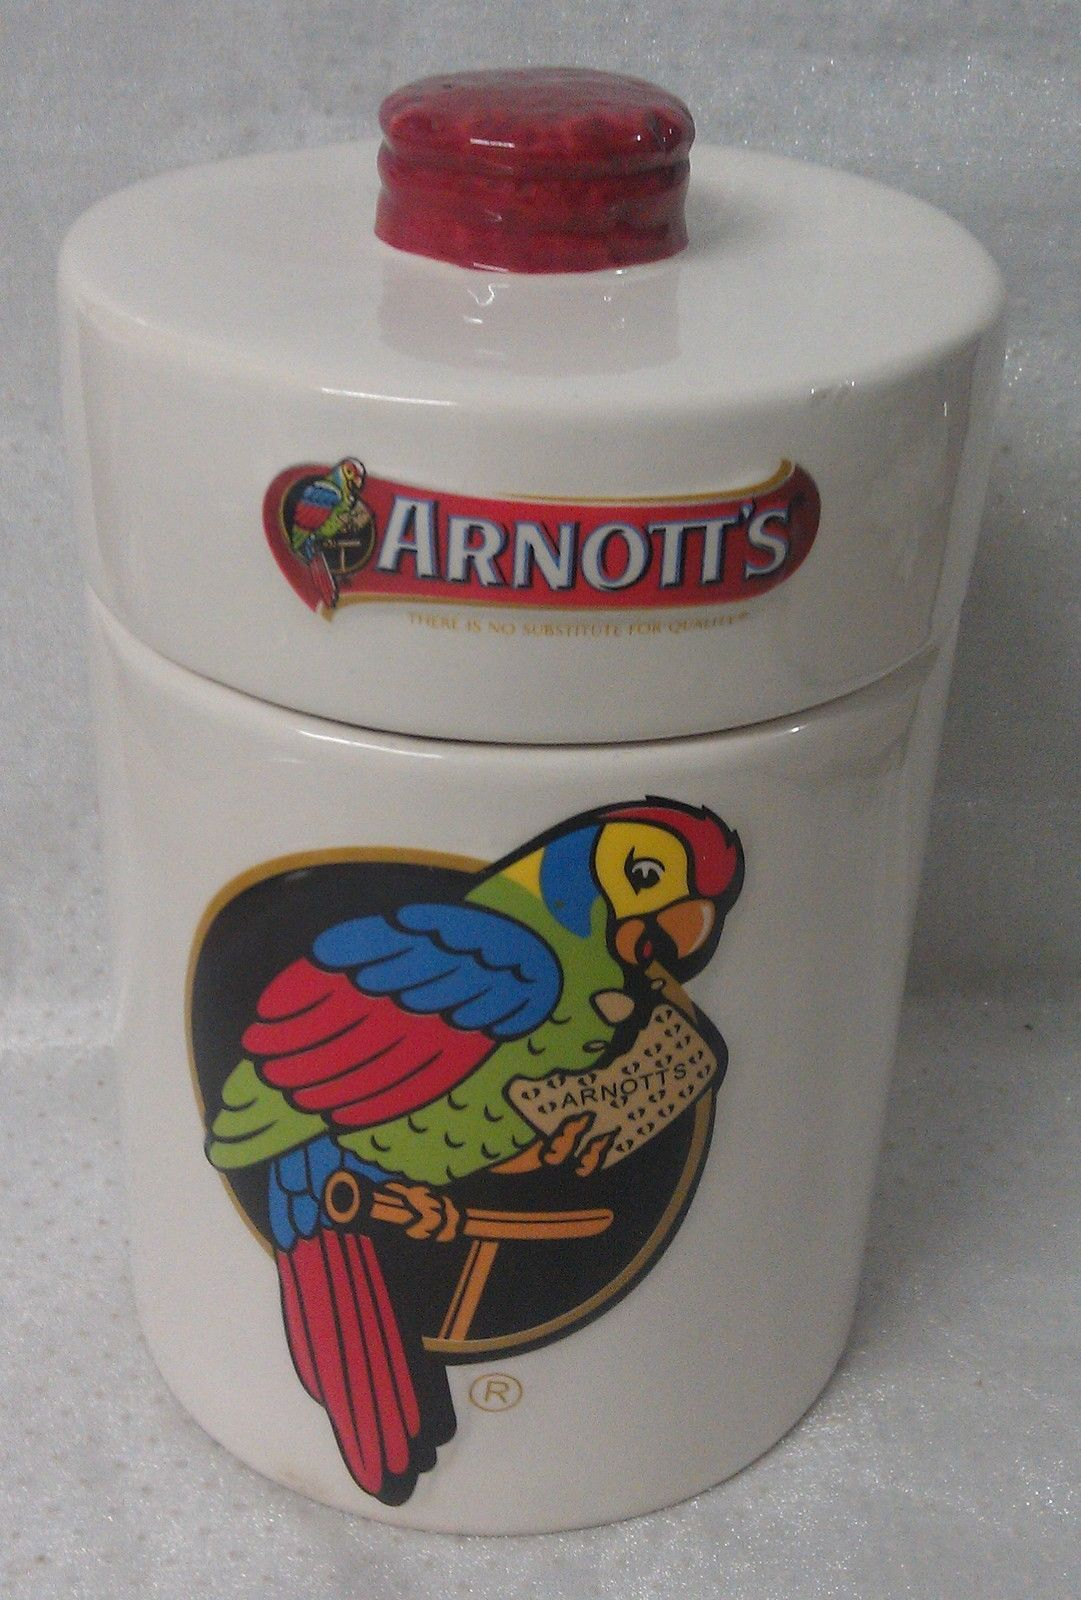 Arnotts Ceramic Biscuit Barrel with Lid -- Iconic Eastern Rosella Parrot